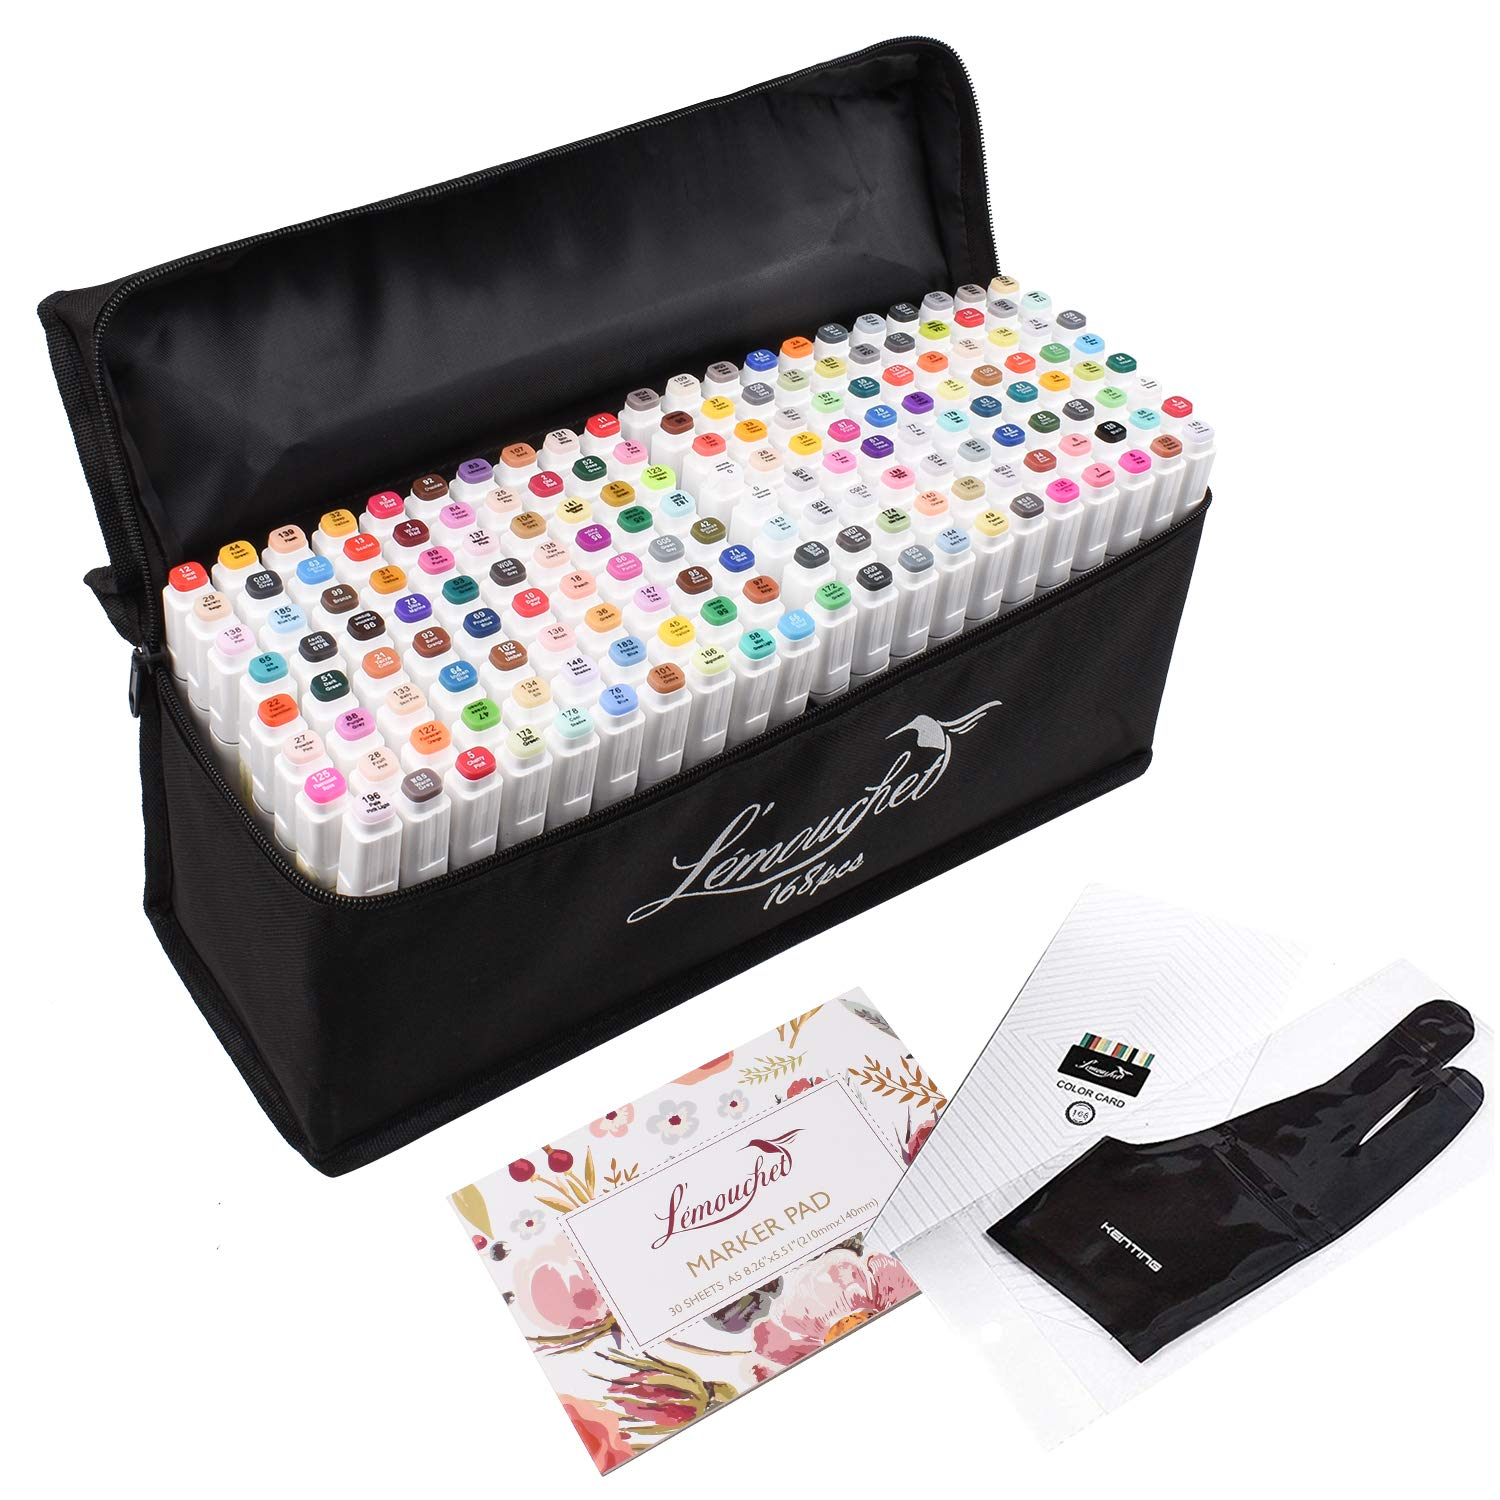 L'émouchet Twin Marker Pens 168+2 Colors Dual Tips Art Animation Blender Pens with Carrying Case for Sketch Coloring Painting Highlighting Underlining Render Manga and Design